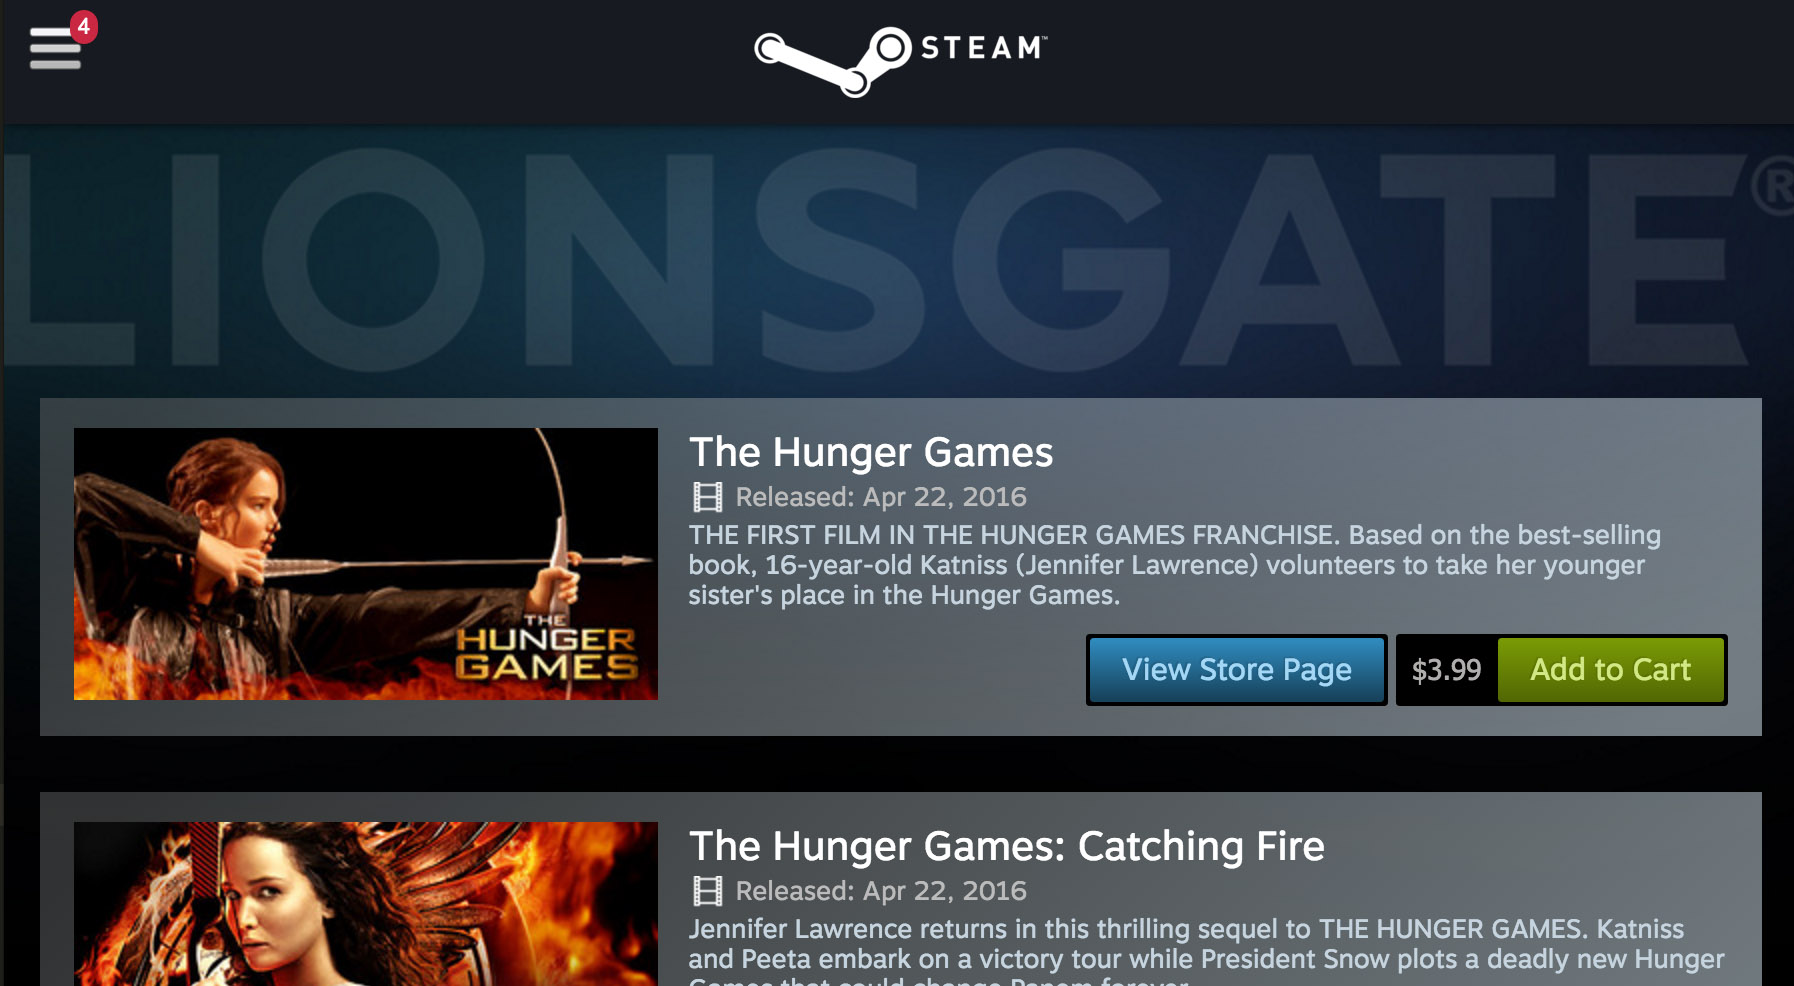 steam-lionsgate-screen-mobile